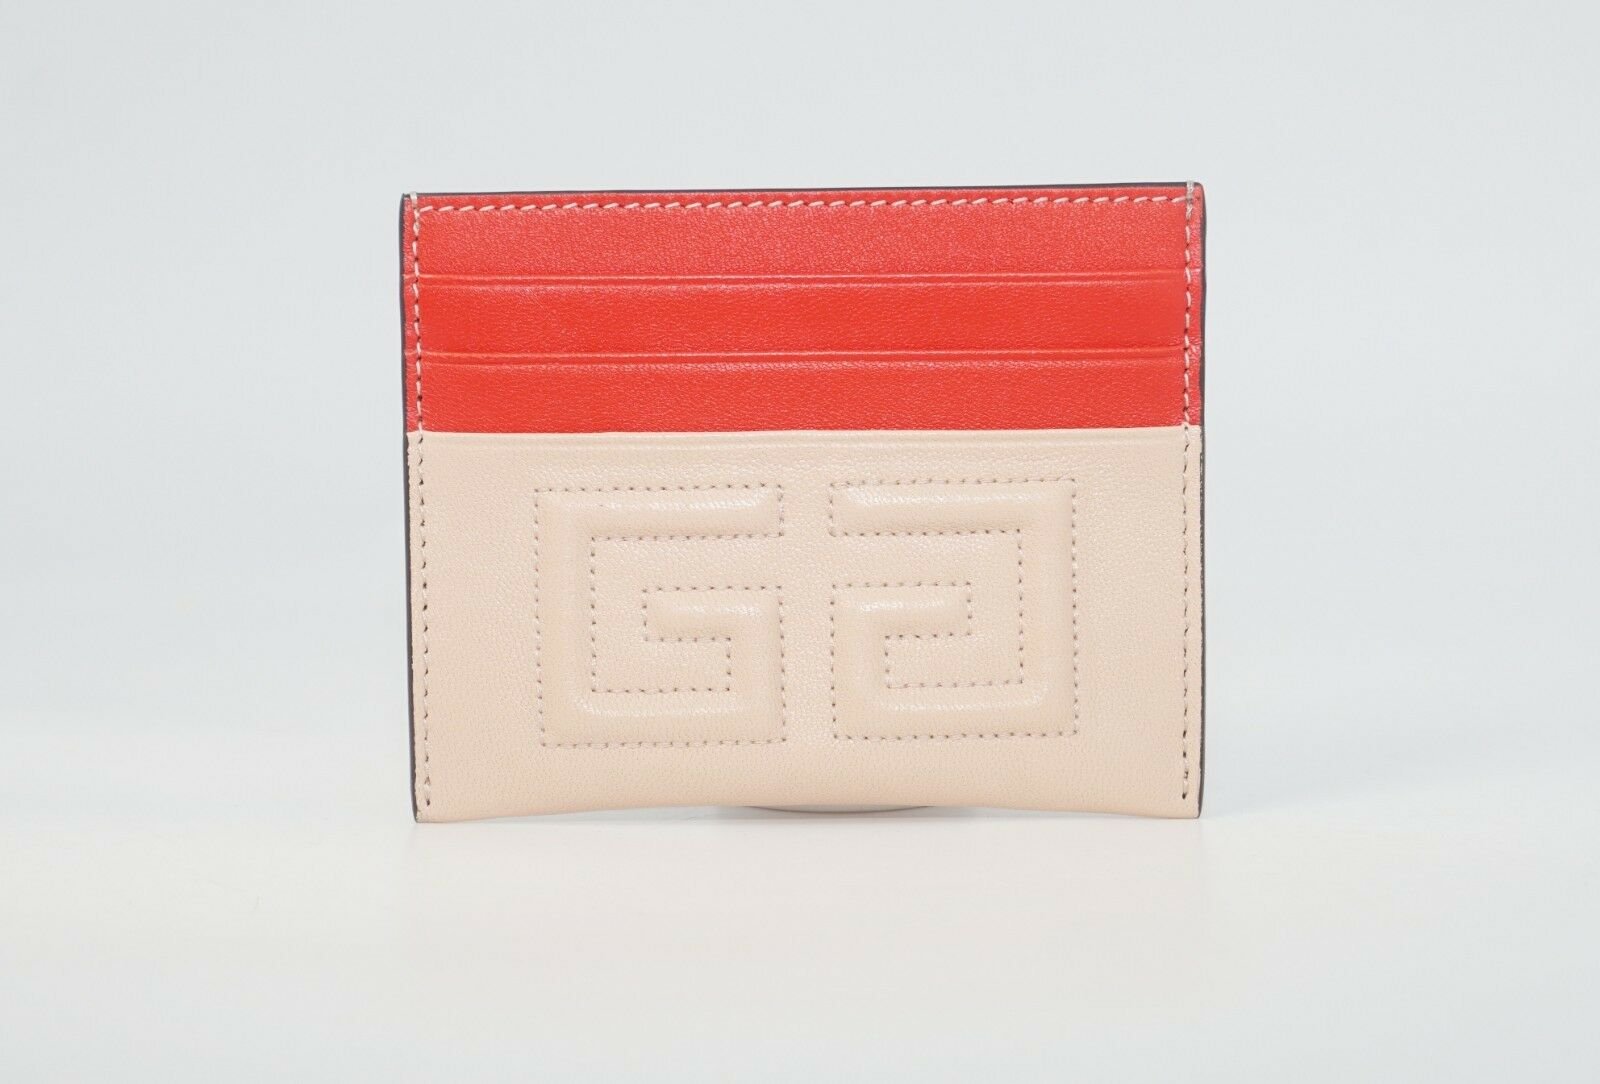 Givenchy Men's Embroidered 2G Emblem Two-Tone Leather Card C